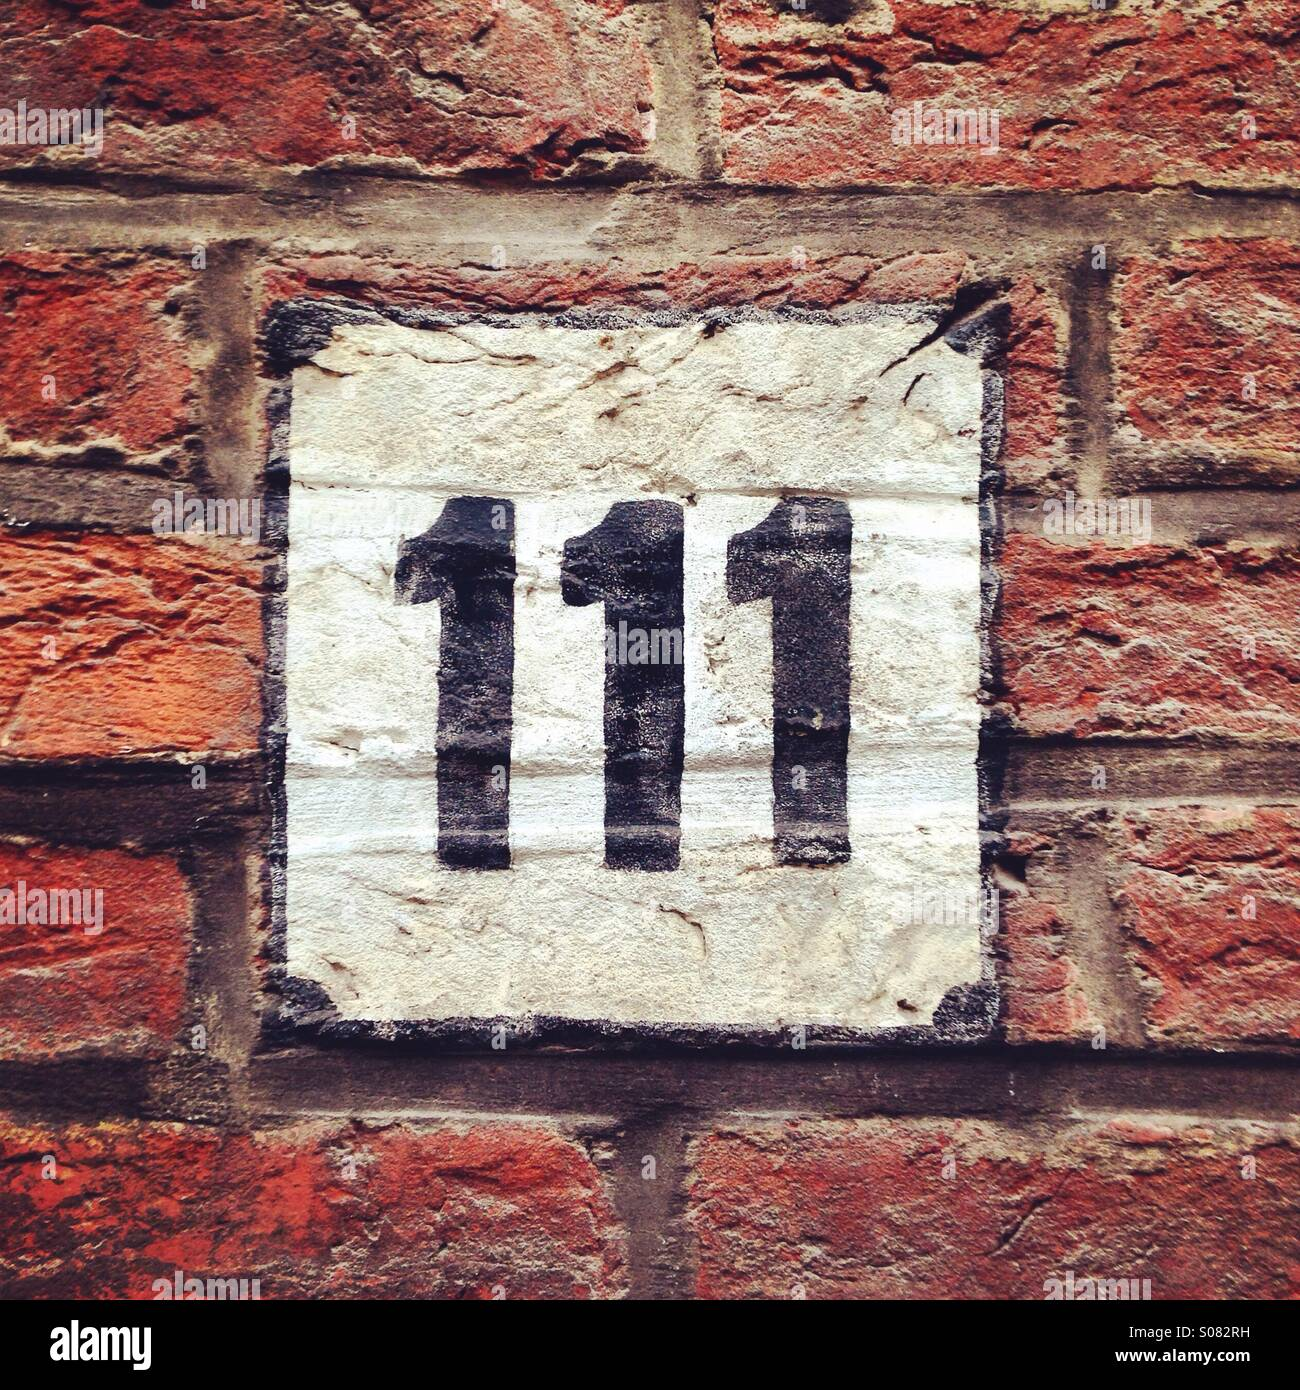 Number 111 - Stock Image